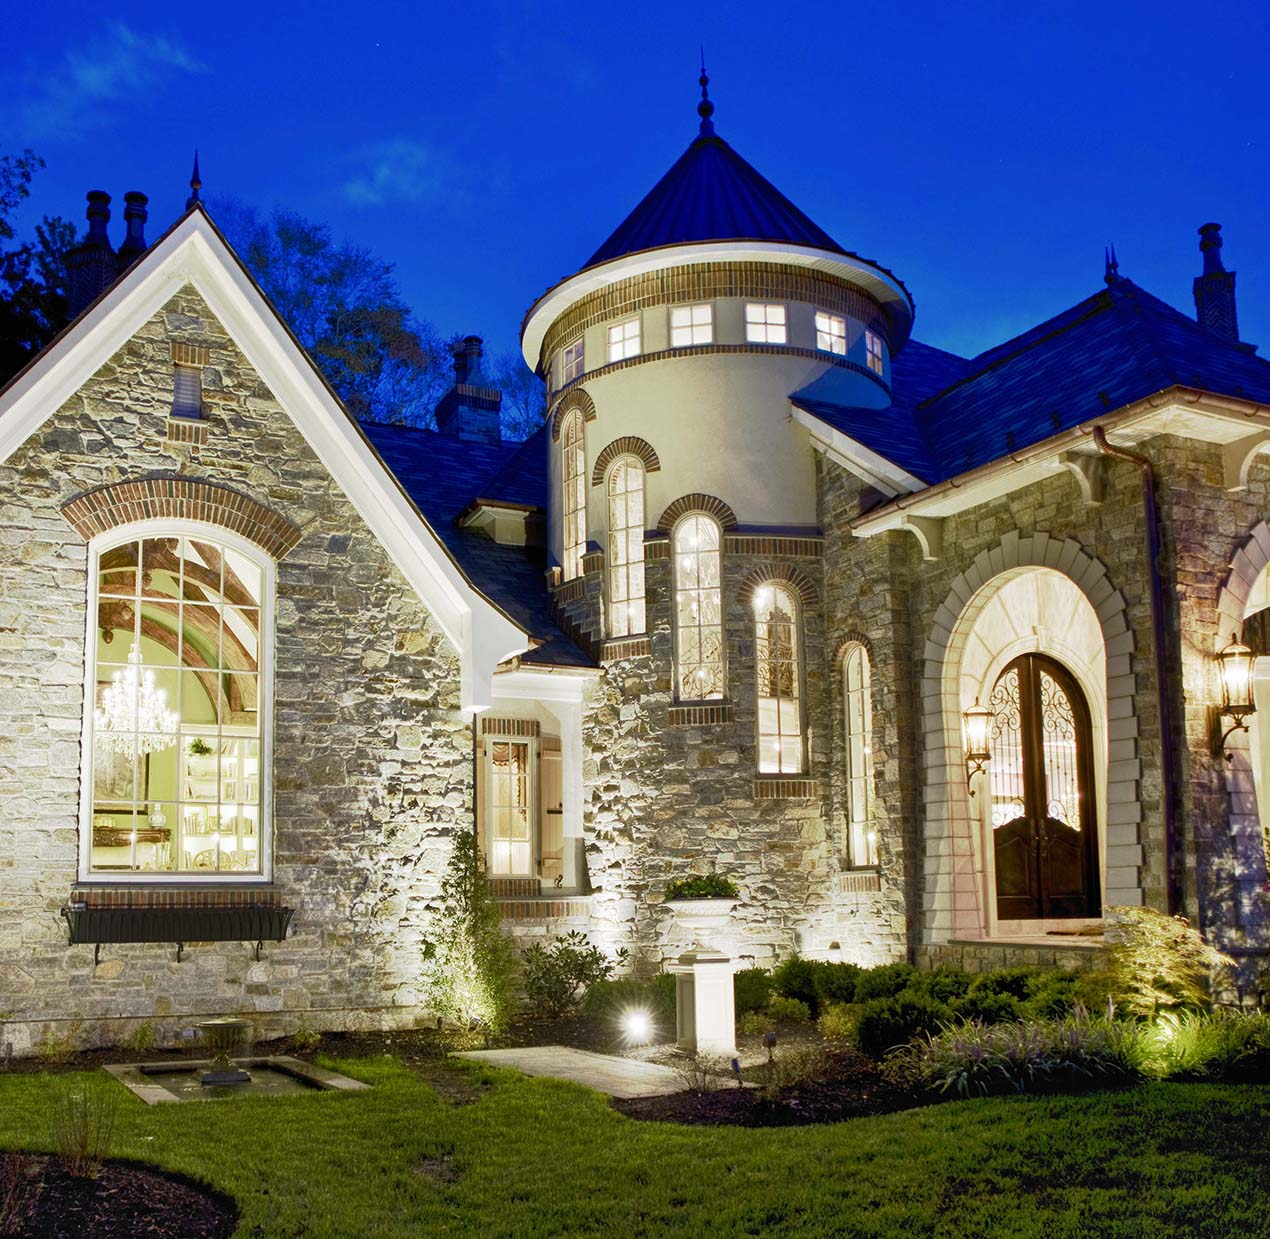 Enchanted Castle Holliday Architects